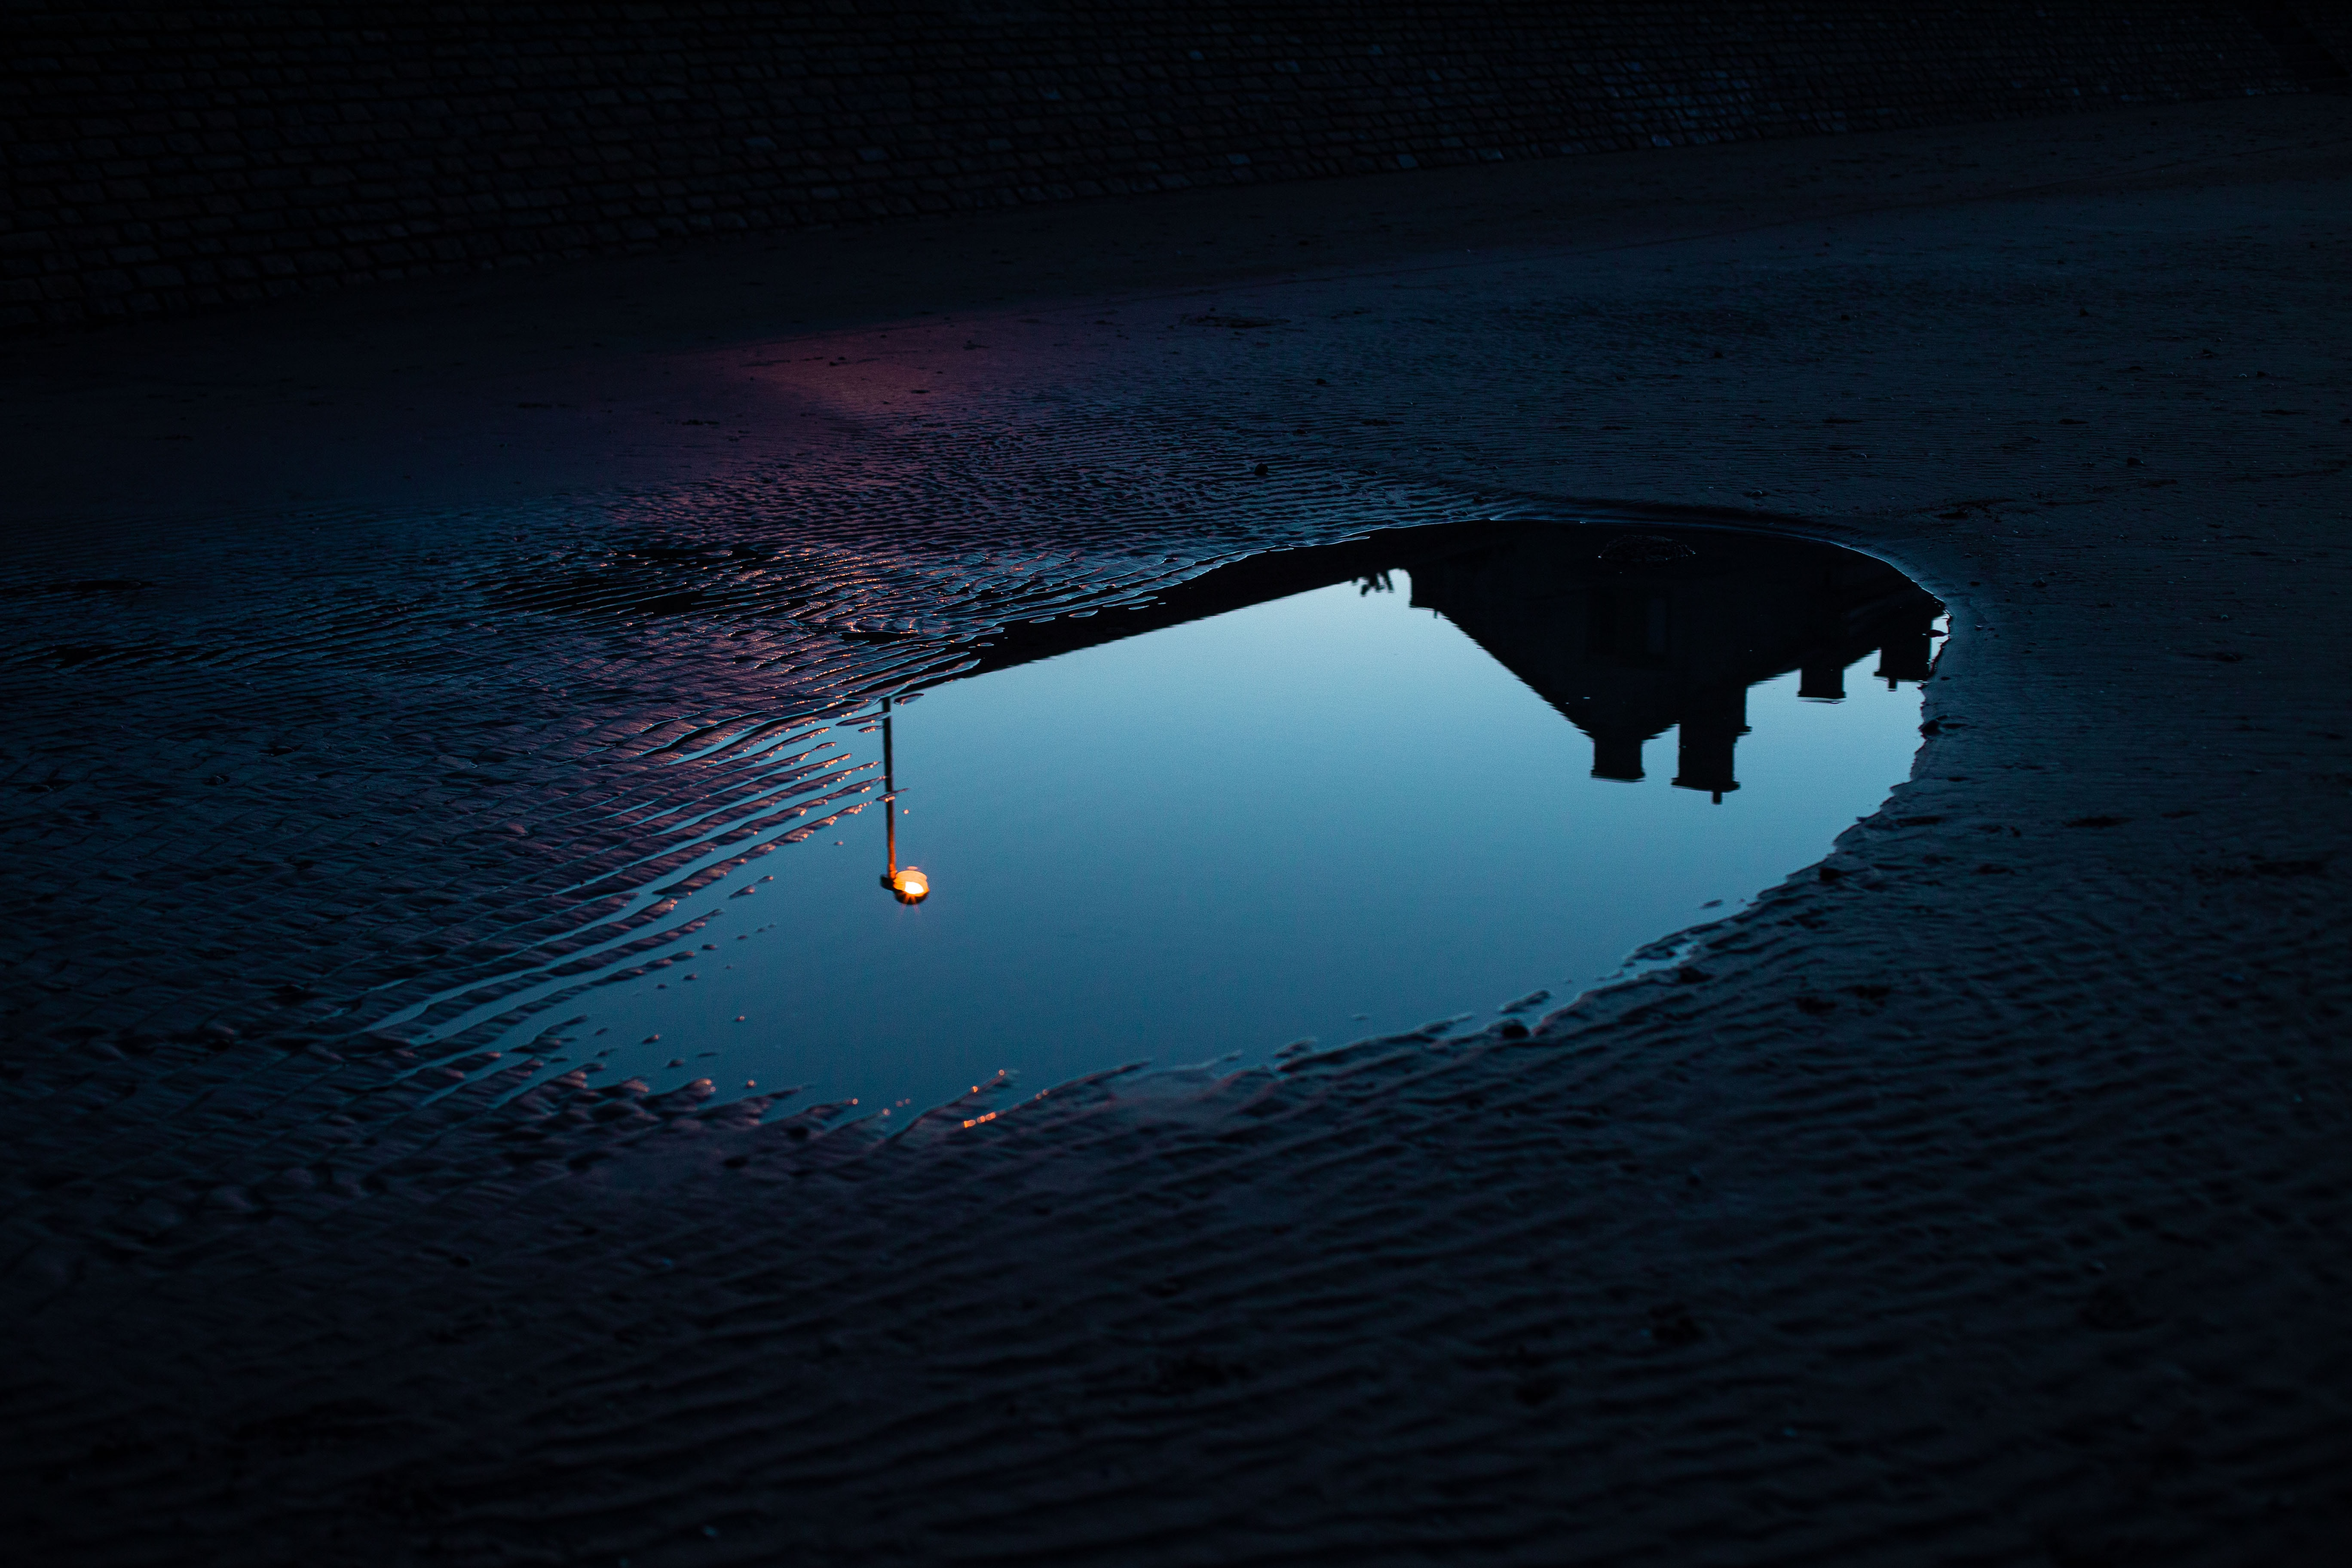 134425 Screensavers and Wallpapers Lamp for phone. Download Dark, Reflection, Lamp, Lantern, Puddle pictures for free